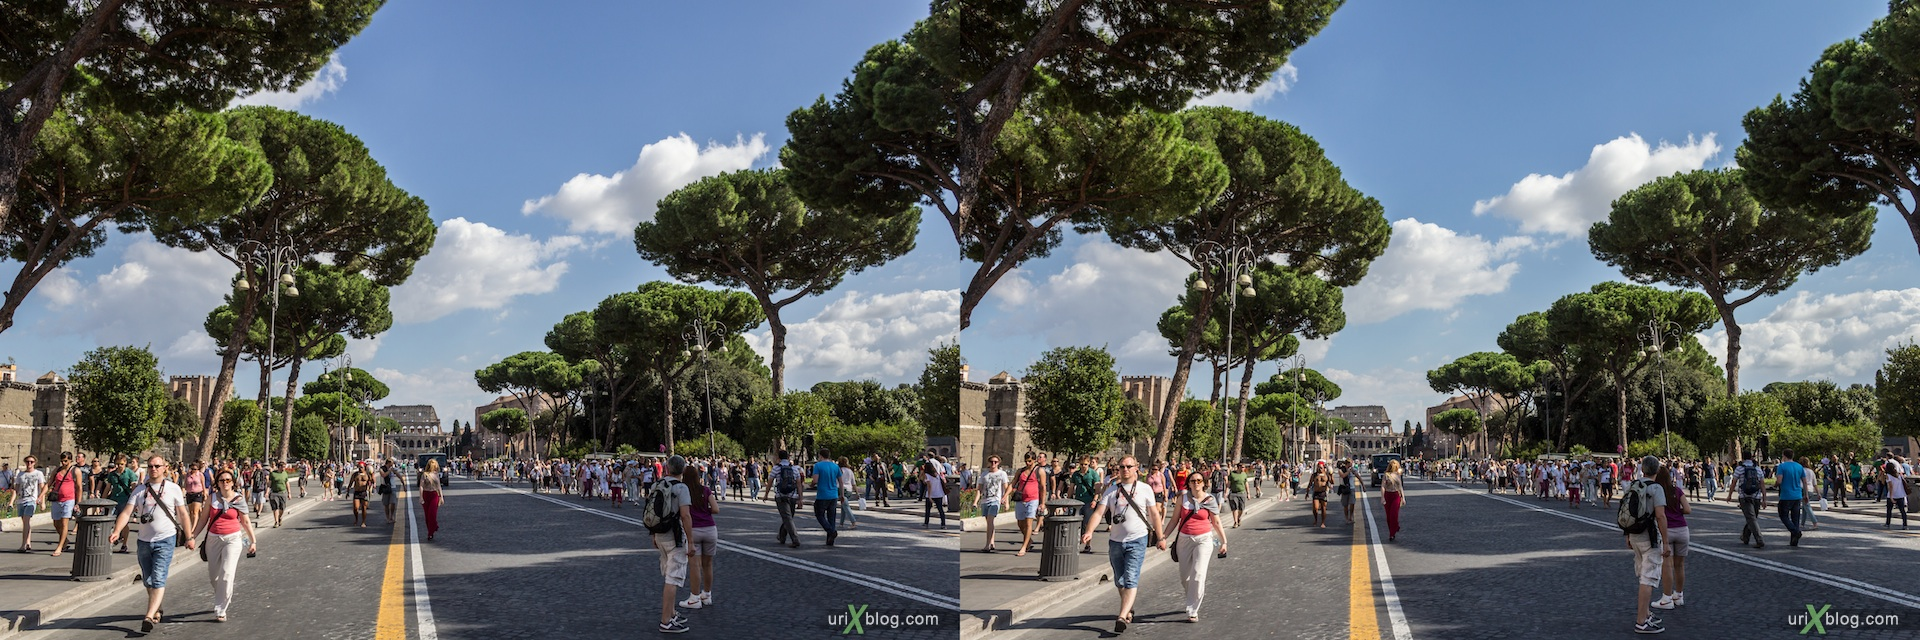 2012, Via dei Fori Imperiali walking street, Rome, Italy, Europe, 3D, stereo pair, cross-eyed, crossview, cross view stereo pair